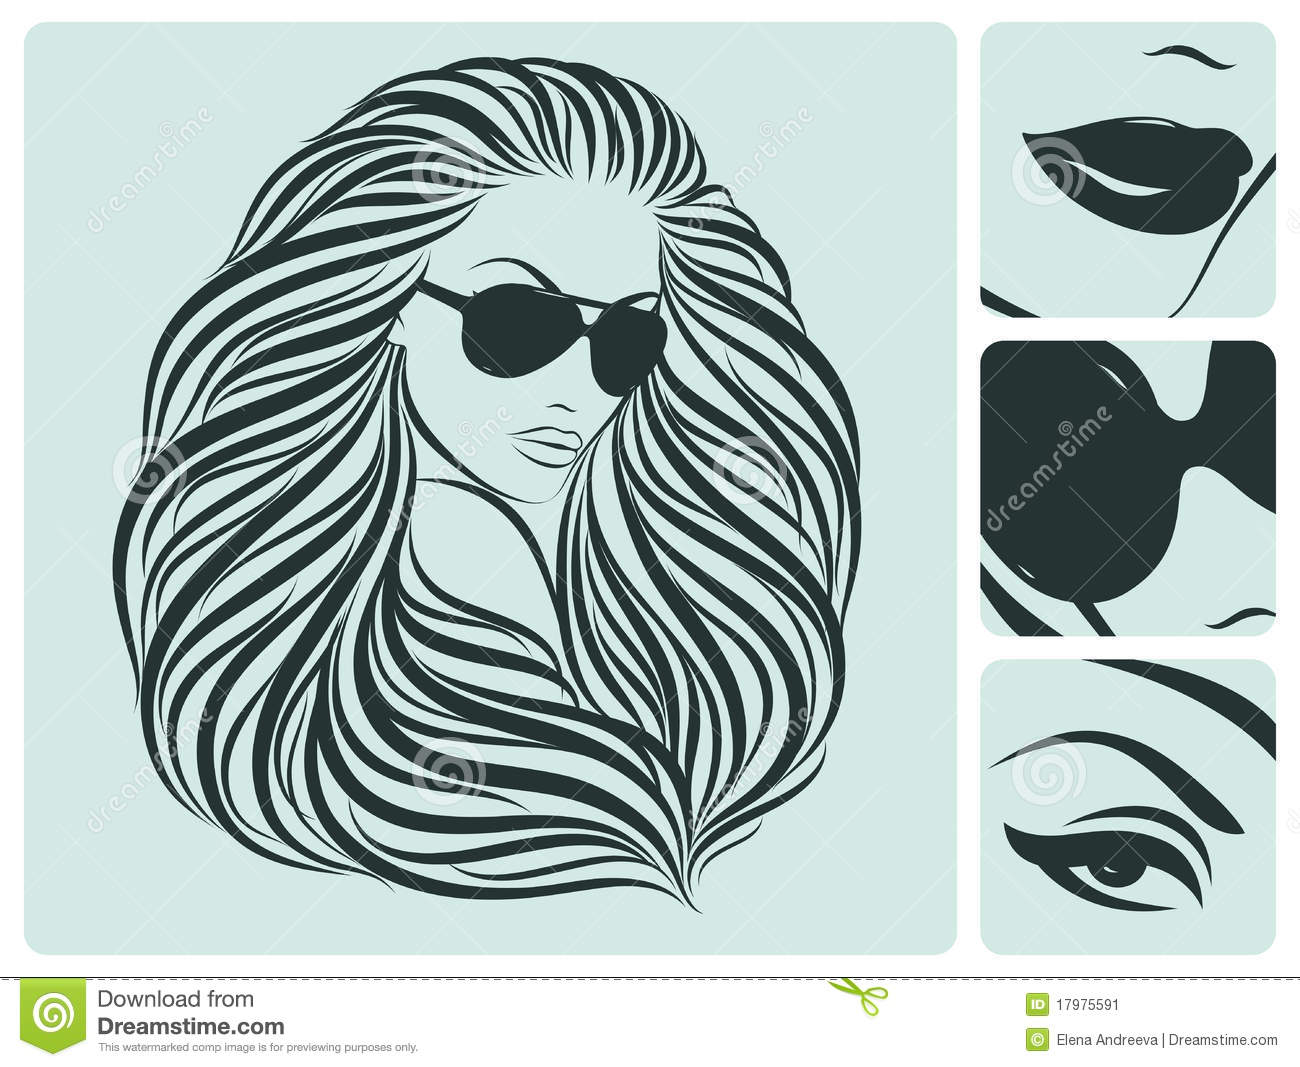 Hairstyle Vector: Long Hairstyle. Vector Illustration. Stock Vector